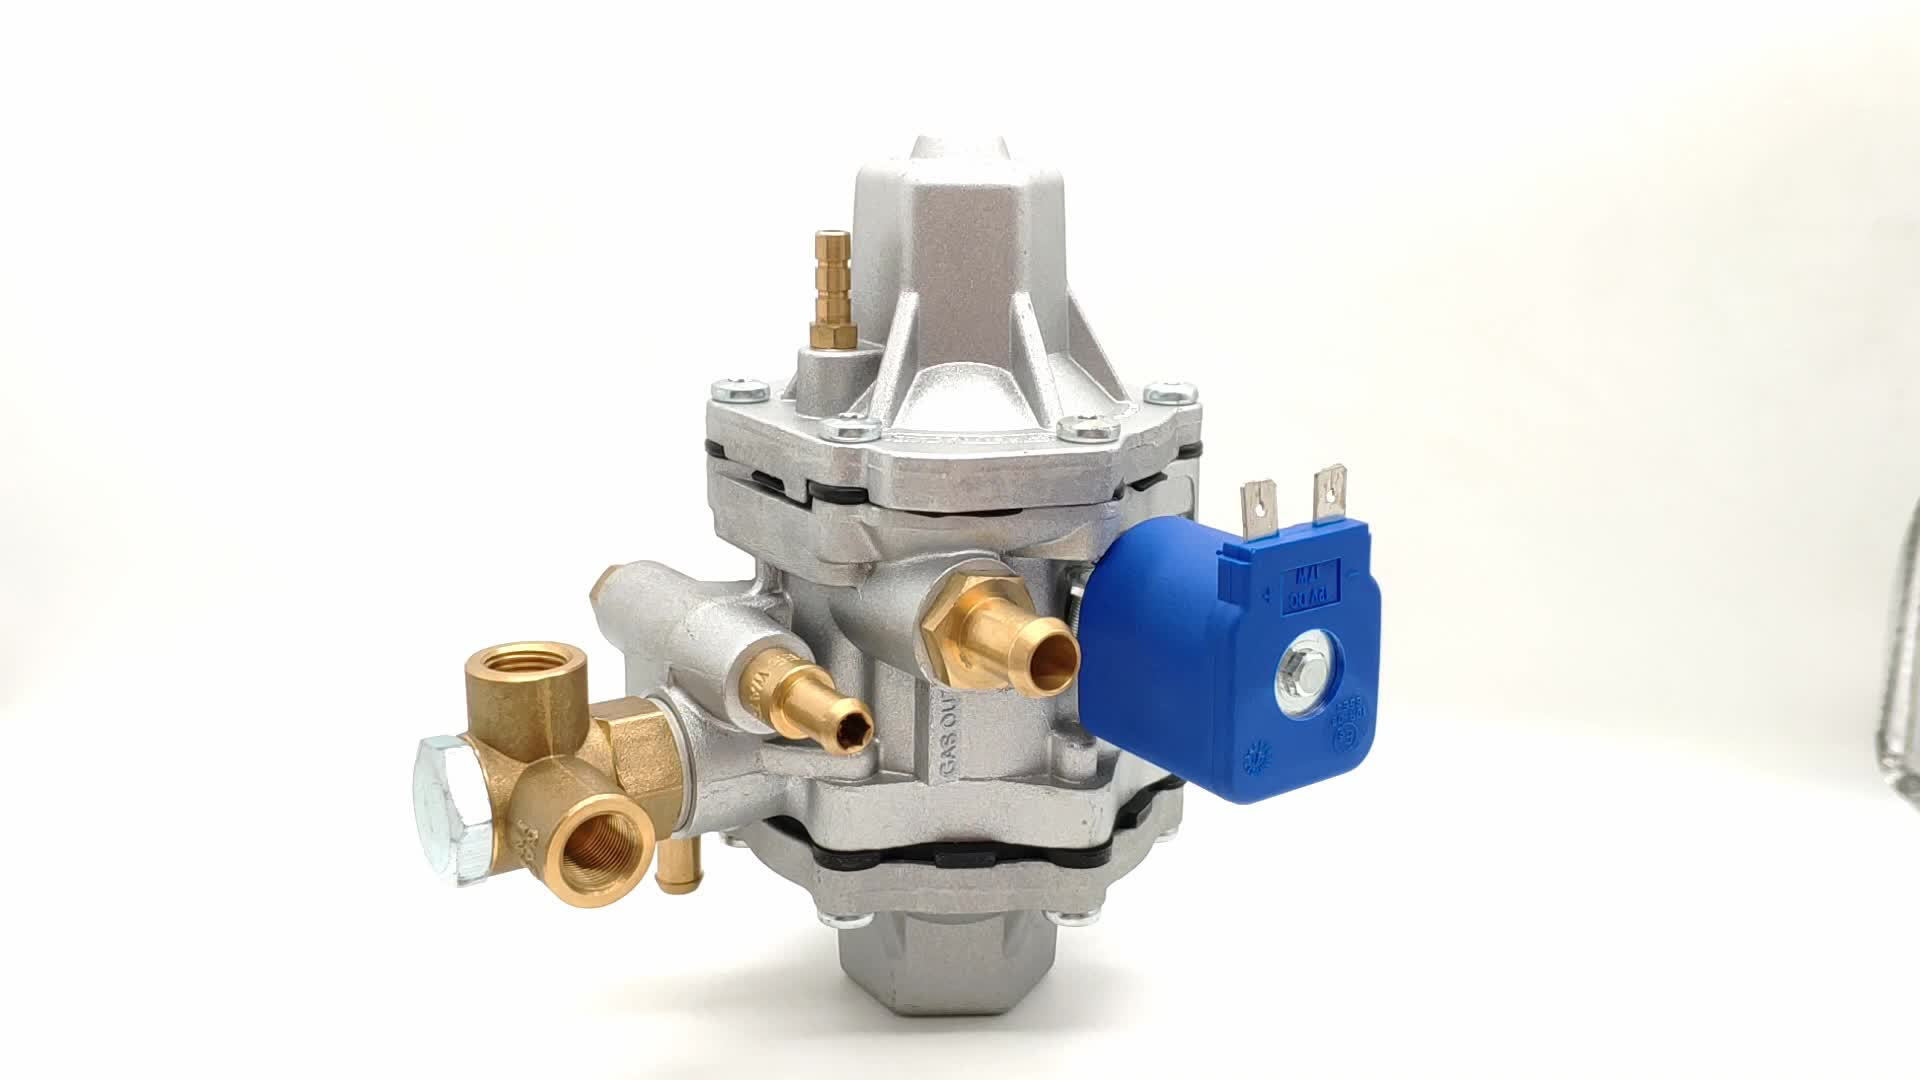 CNG sequential injection system reducer/cng auto parts reducer/regulator for gas conversion kits